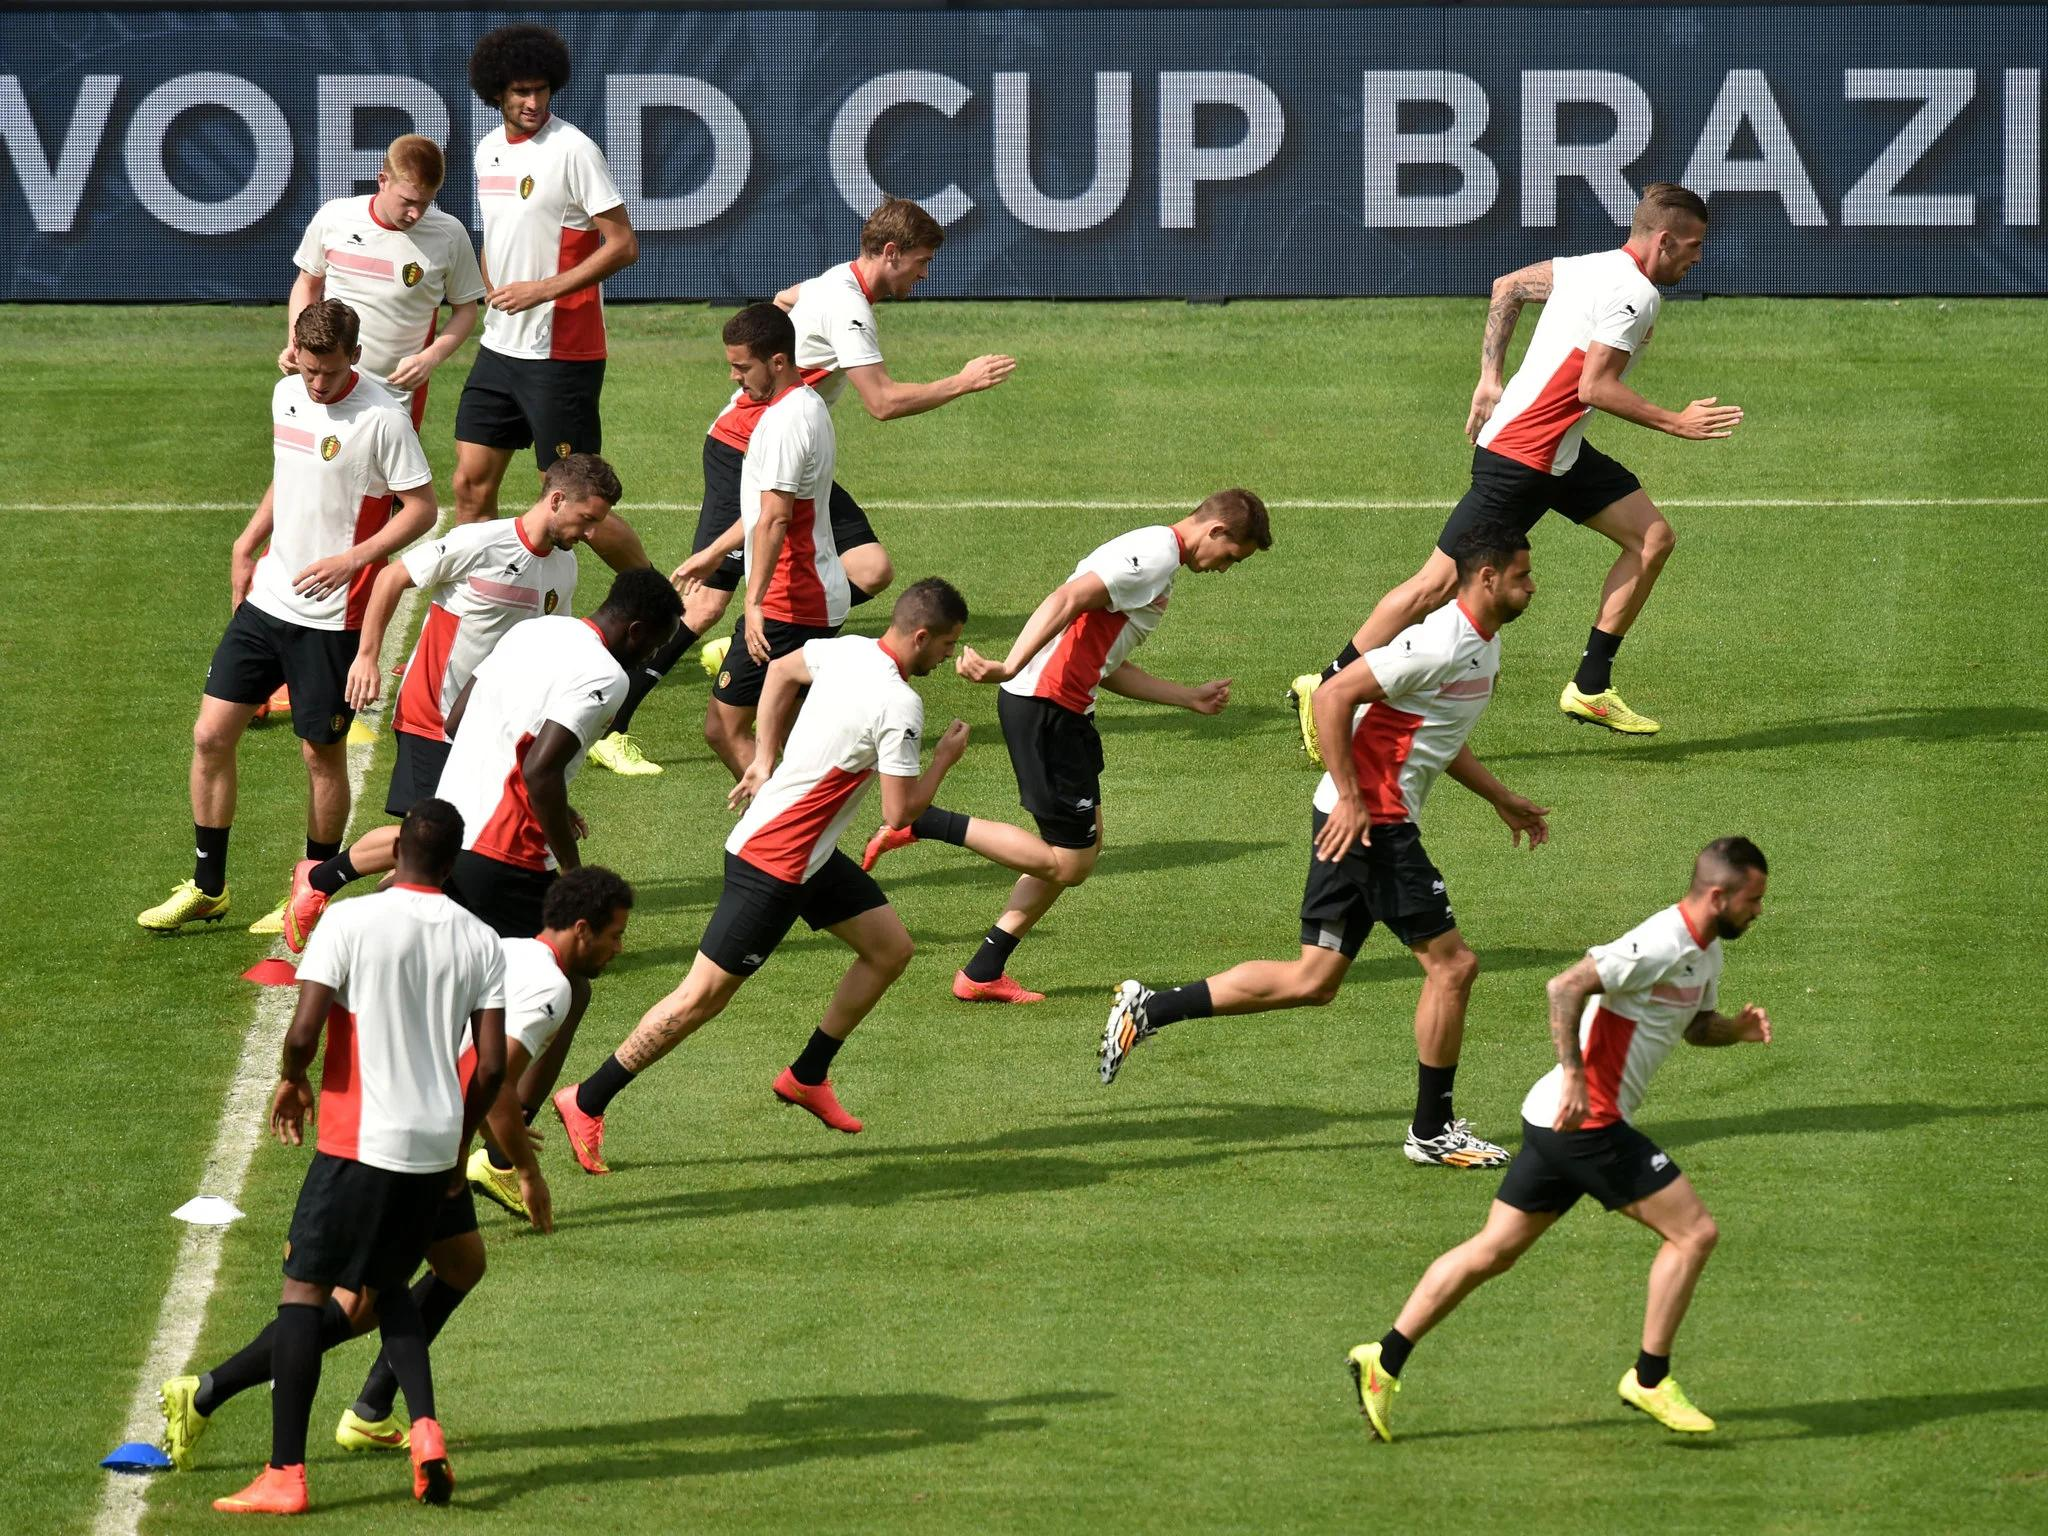 Stream live games and replays (u.s. Belgium vs Russia World Cup 2014 match preview: Marc ...